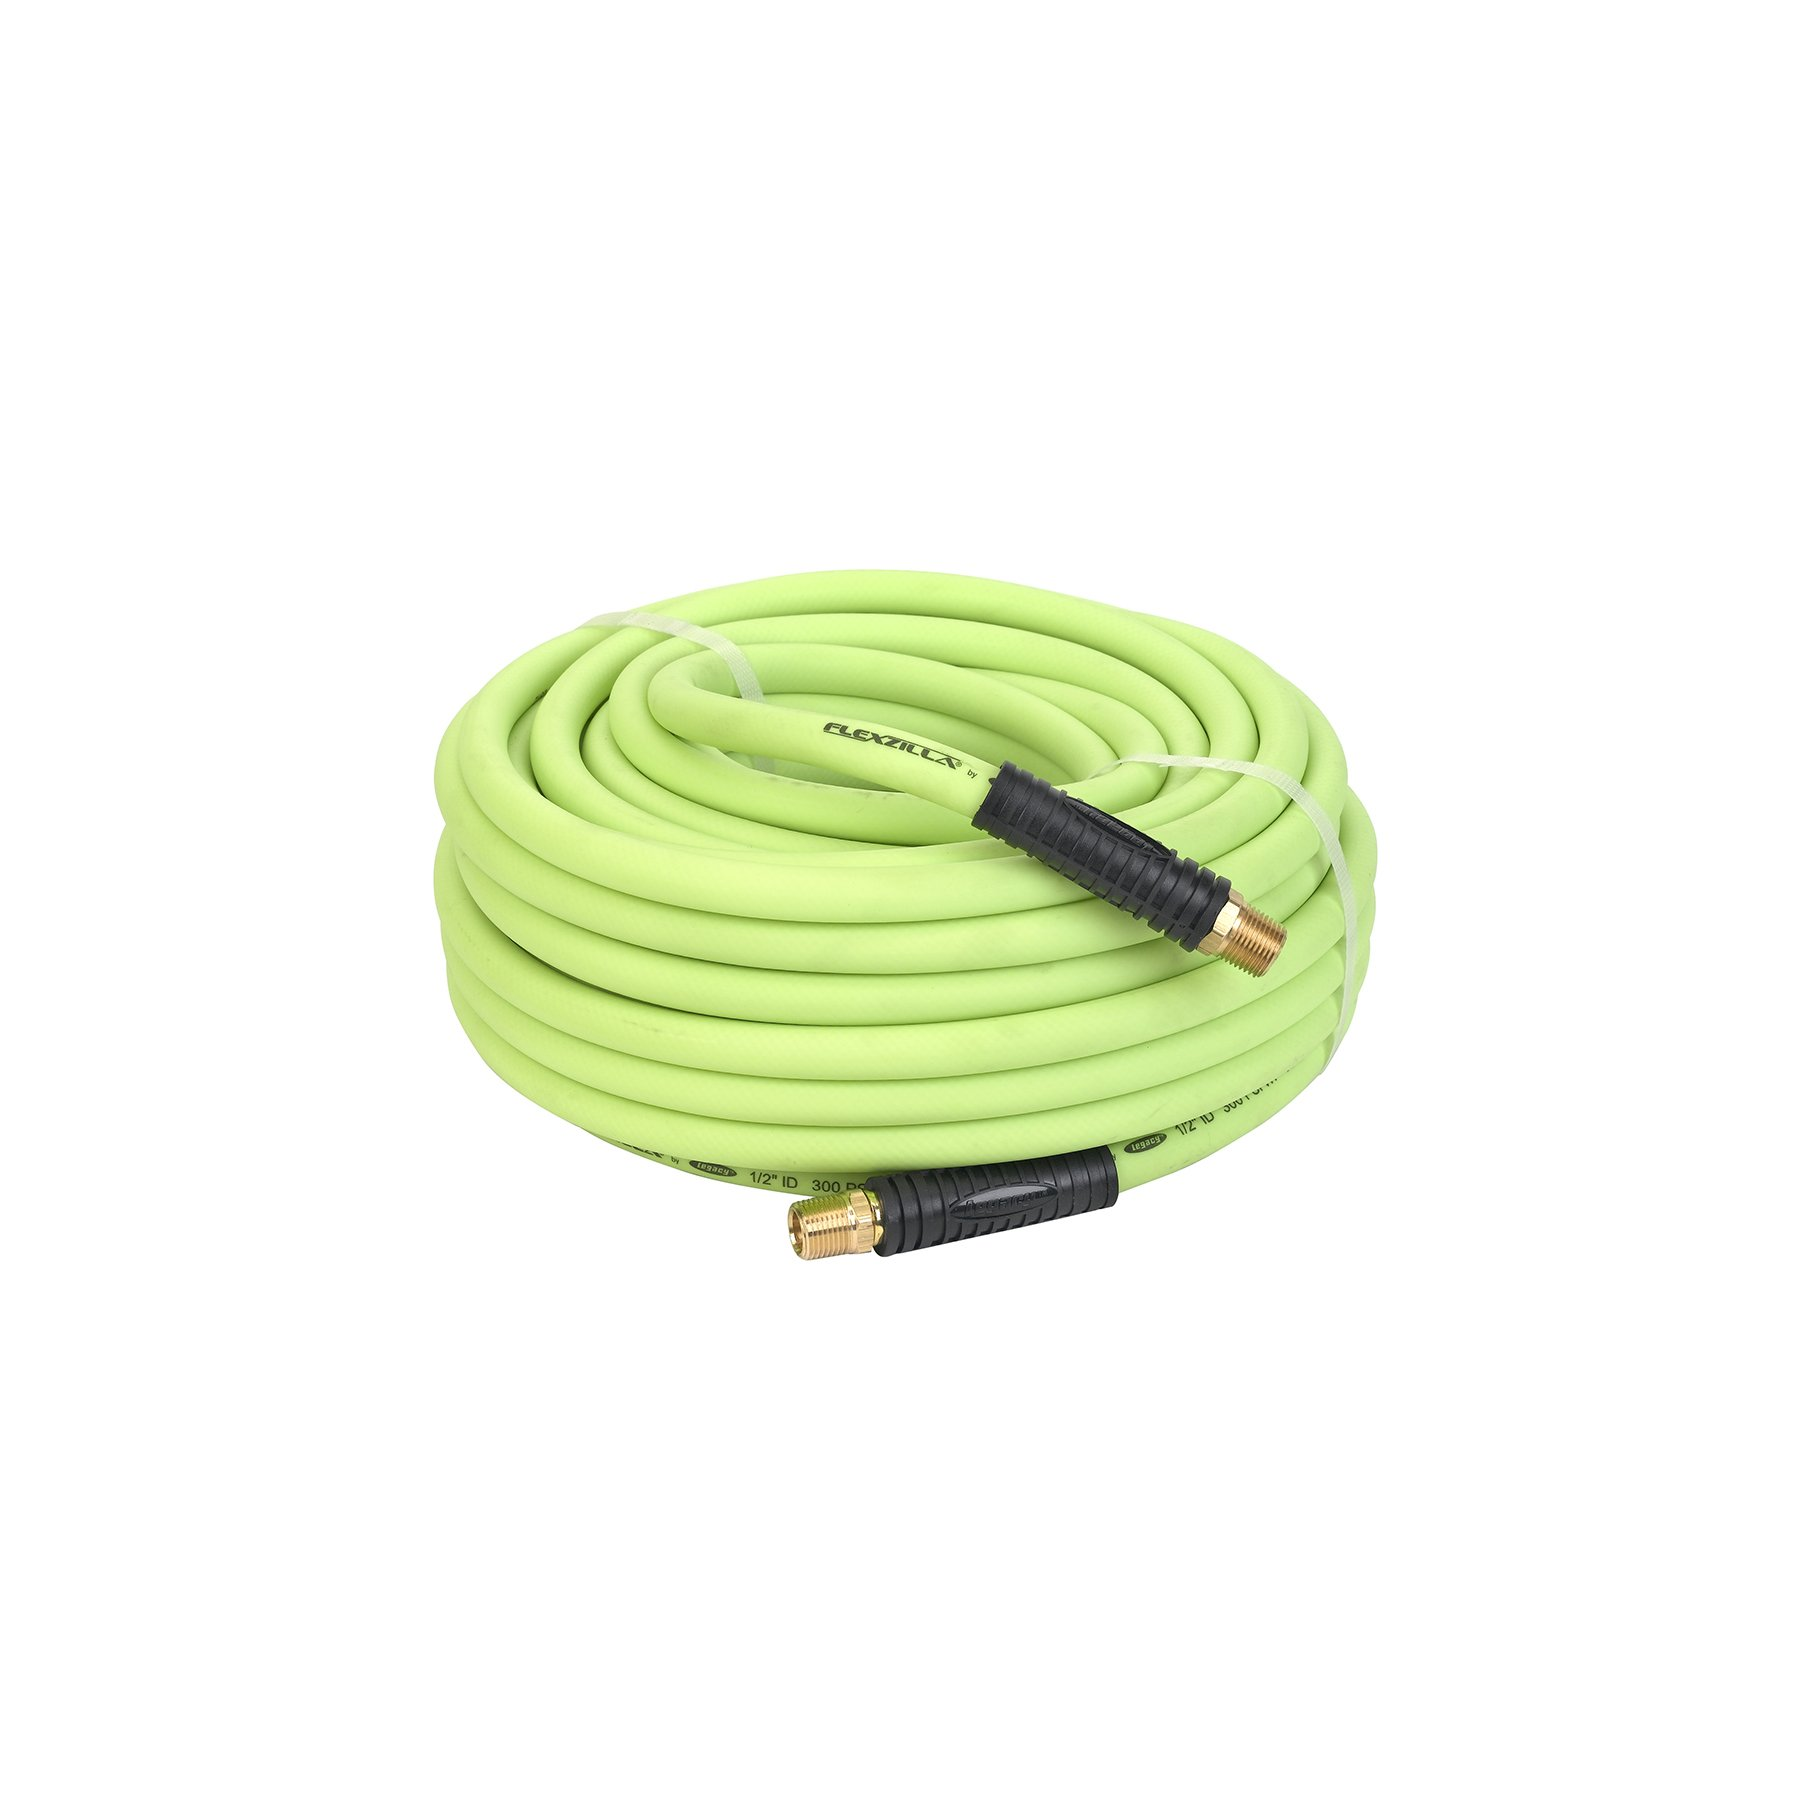 Flexzilla Air Hose, 1/2 in. x 100 ft., 1/2 in. MNPT Fittings, Heavy Duty, Lightweight, Hybrid, ZillaGreen - HFZ12100YW4 by Flexzilla (Image #1)